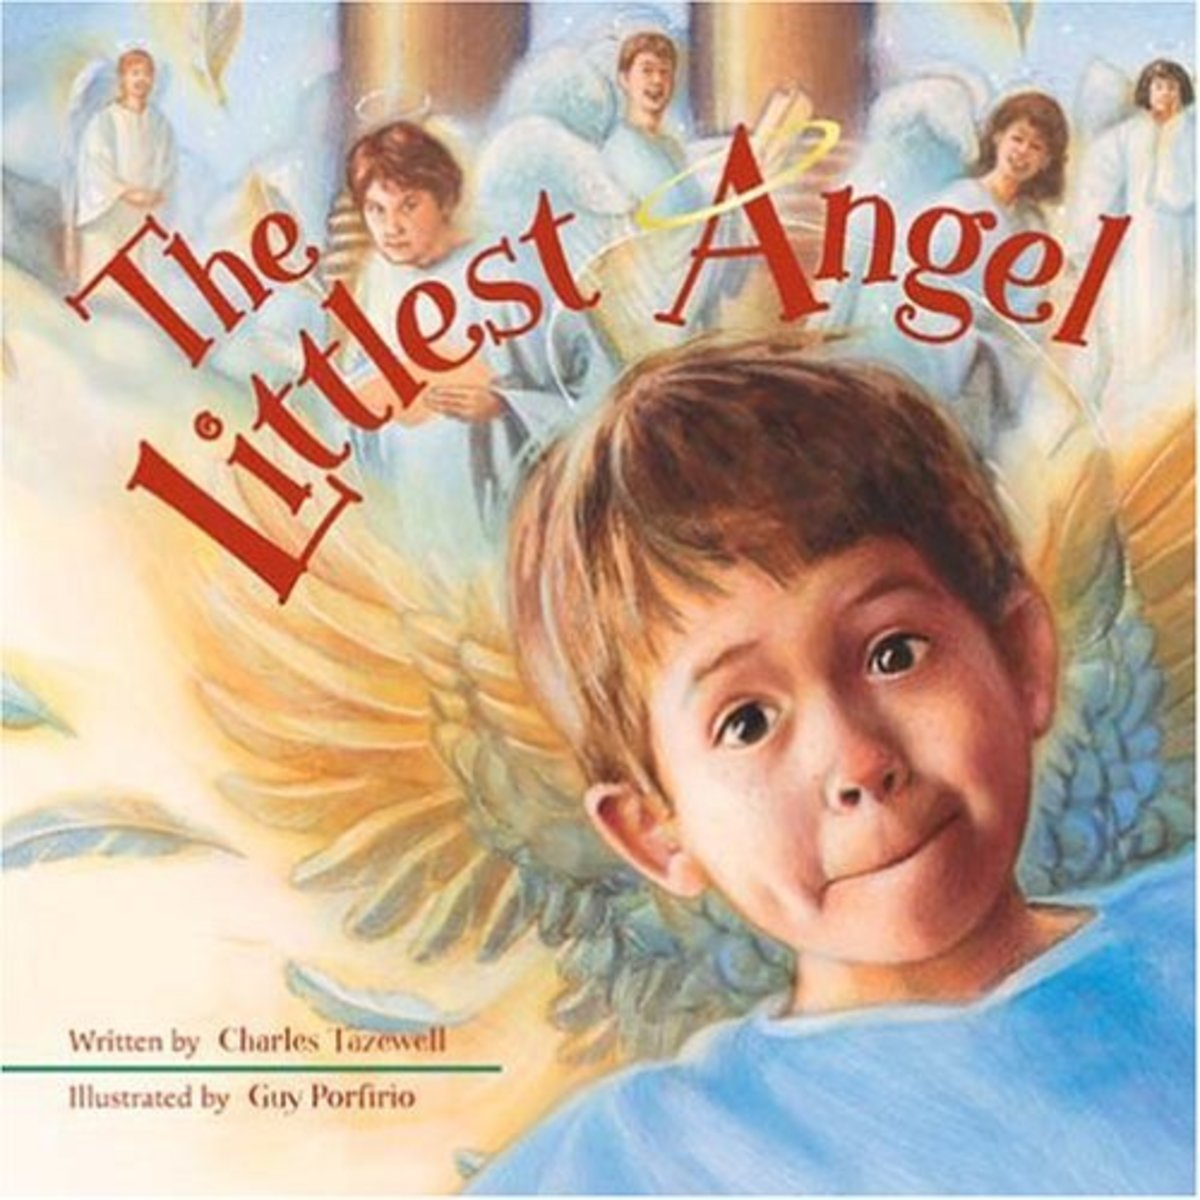 The littlest angel by charles tazewell christmas story